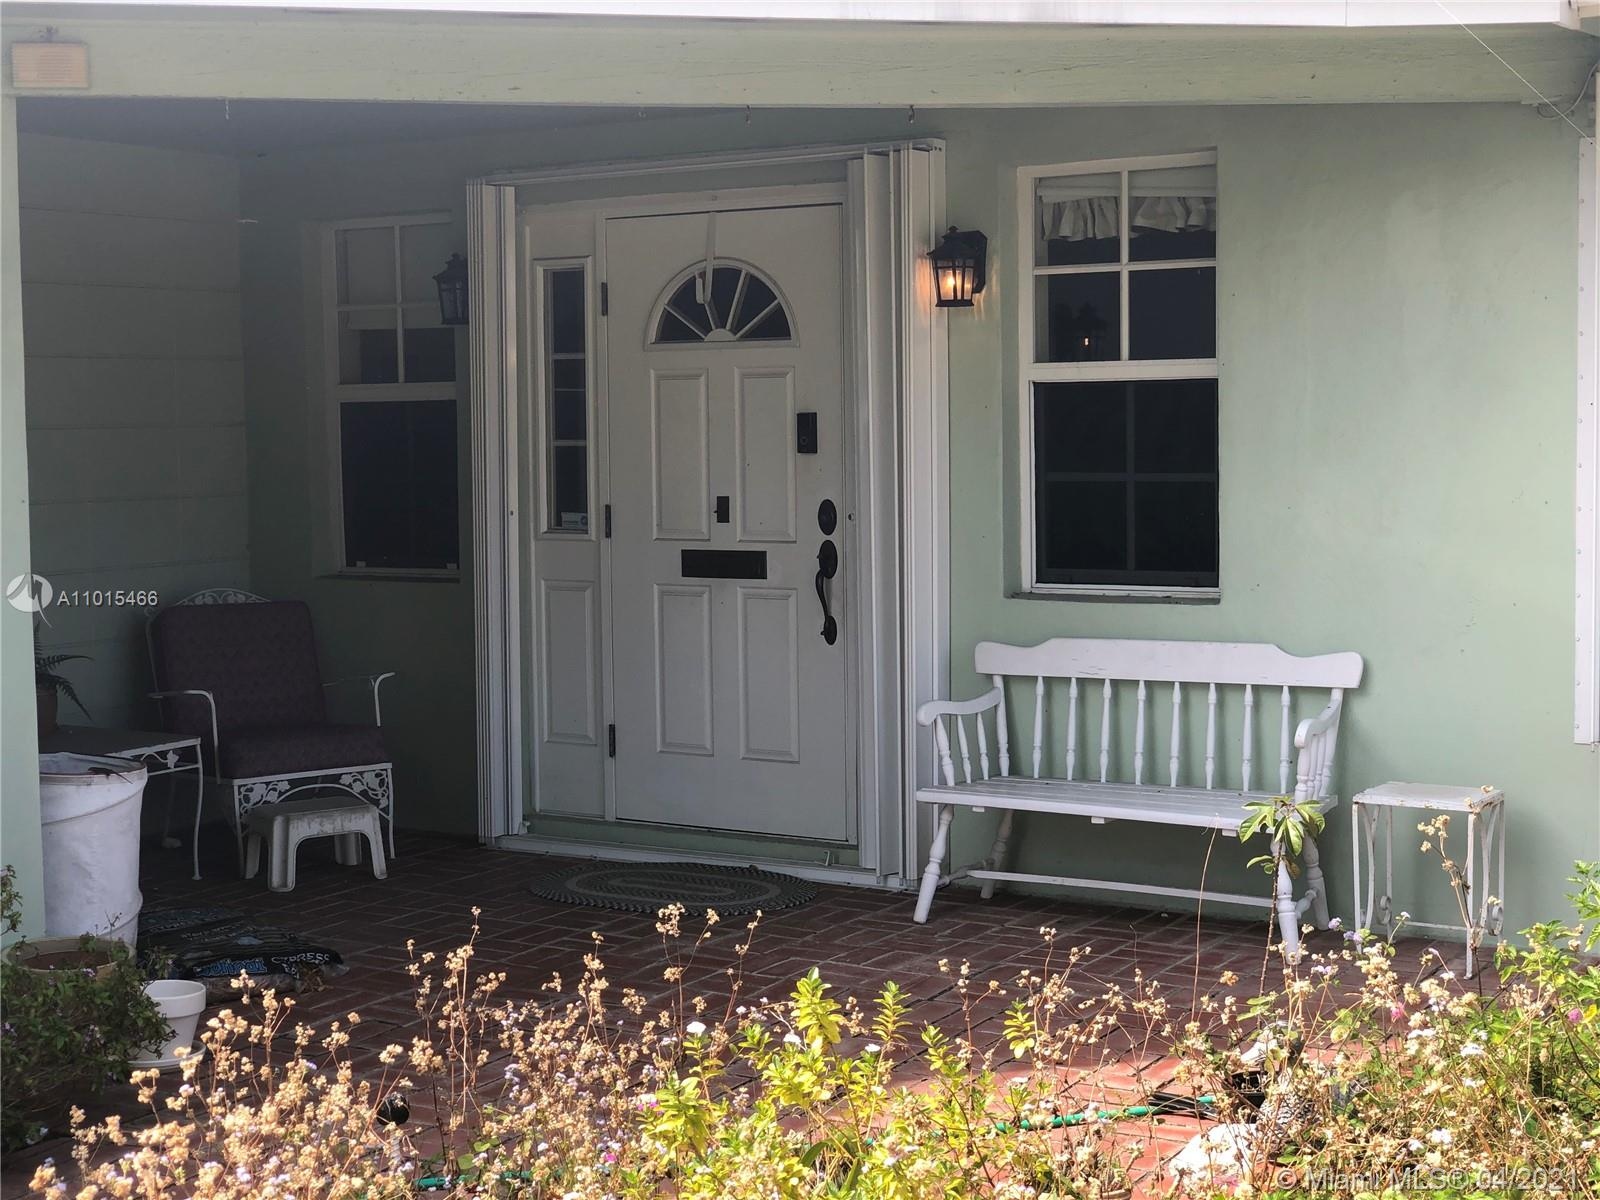 Beautiful Neighborhood! 3 Bed 2 Bath Single Family House with Attached Garage on Quiet Street. Private Fenced in backyard. Very Spacious with amazing potential!